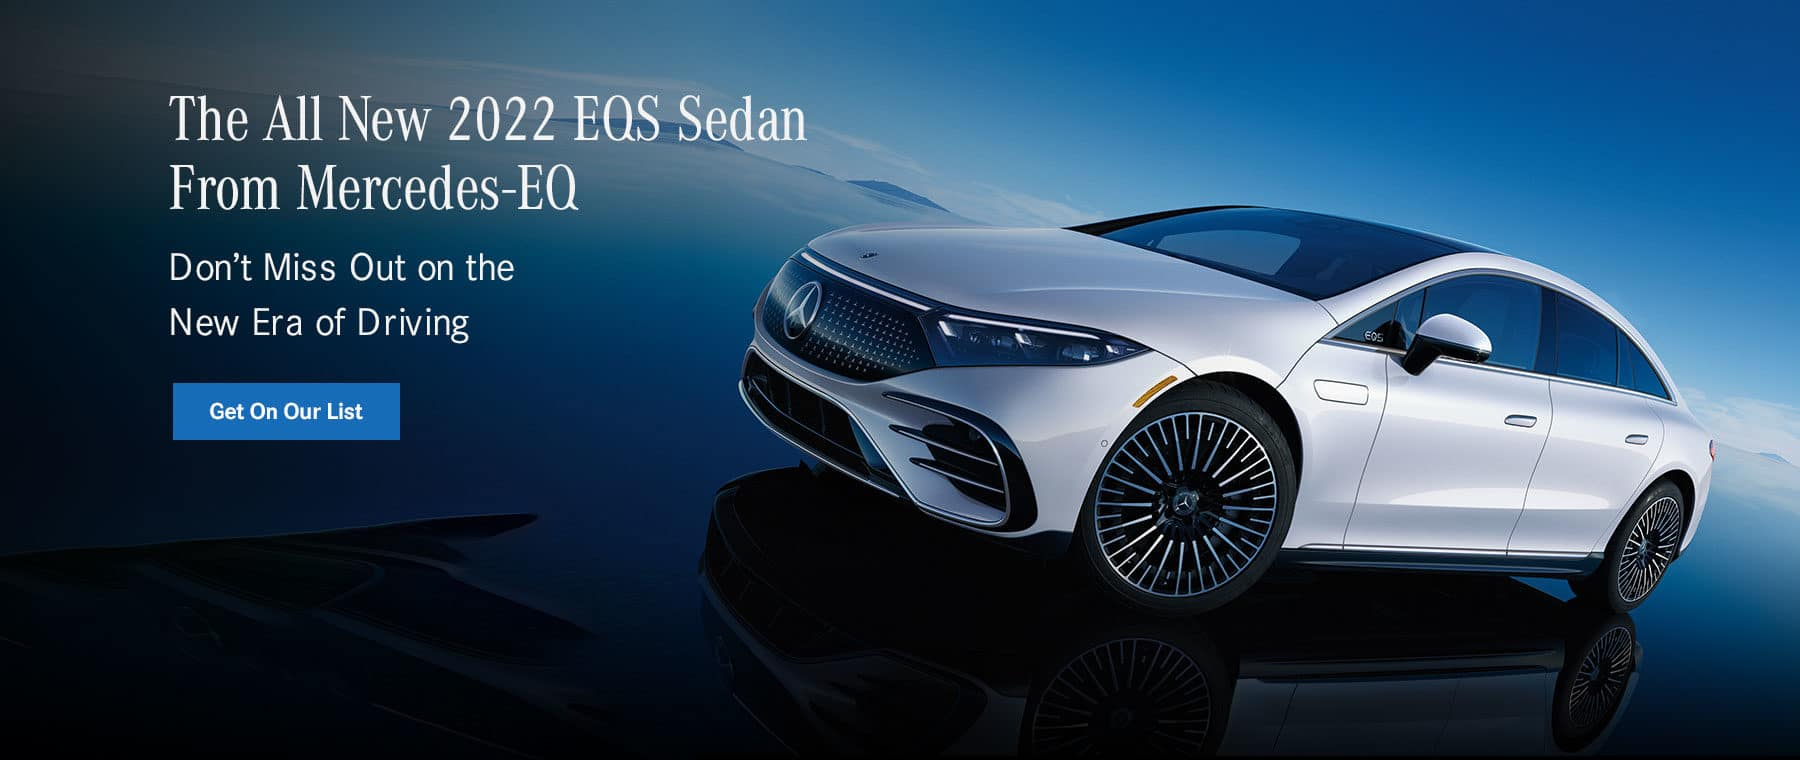 The 2022 Mercedes-Benz EQS - Get On Our List